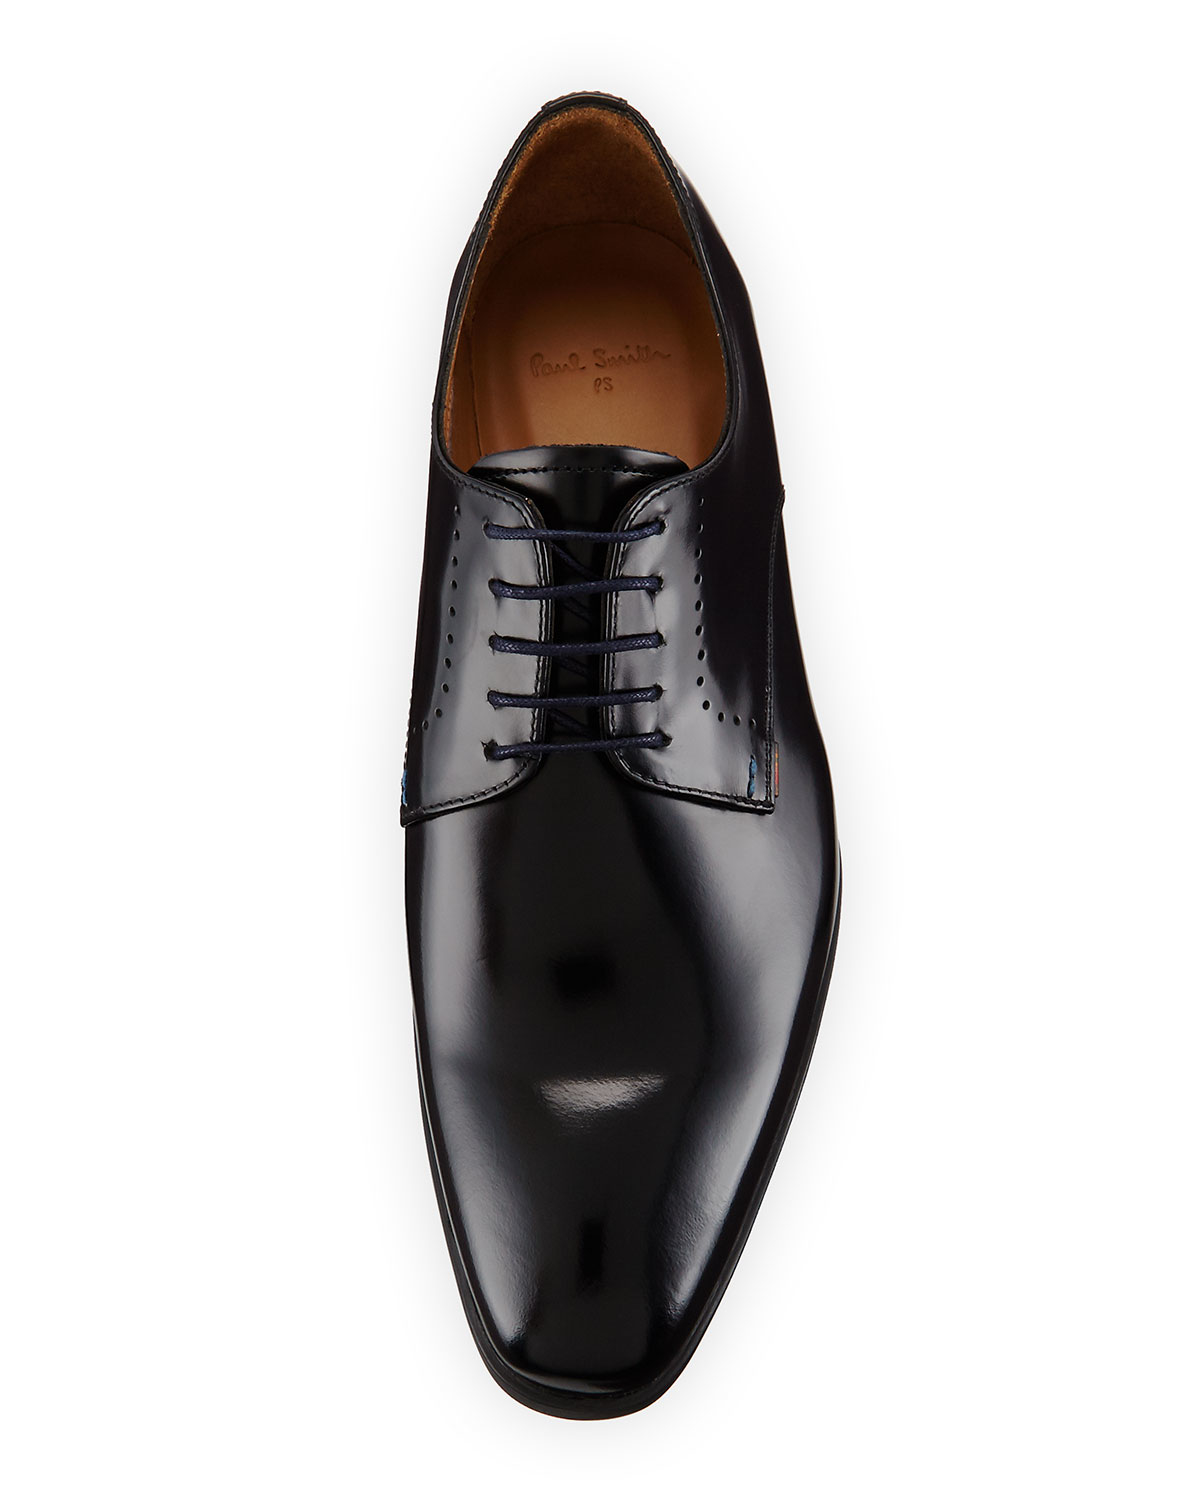 Black Moore Oxfords Paul Smith YV69UoGngt